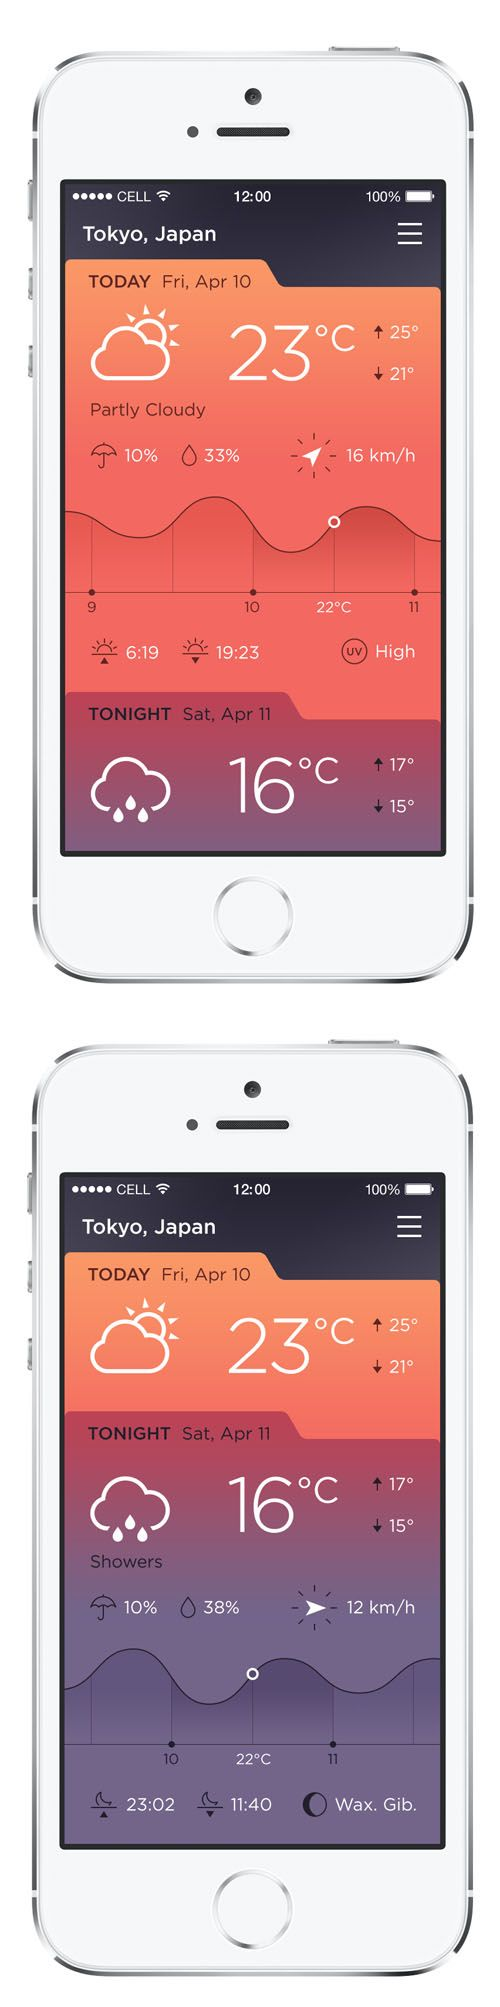 iPhone Weather App Design UI UX Screen Web